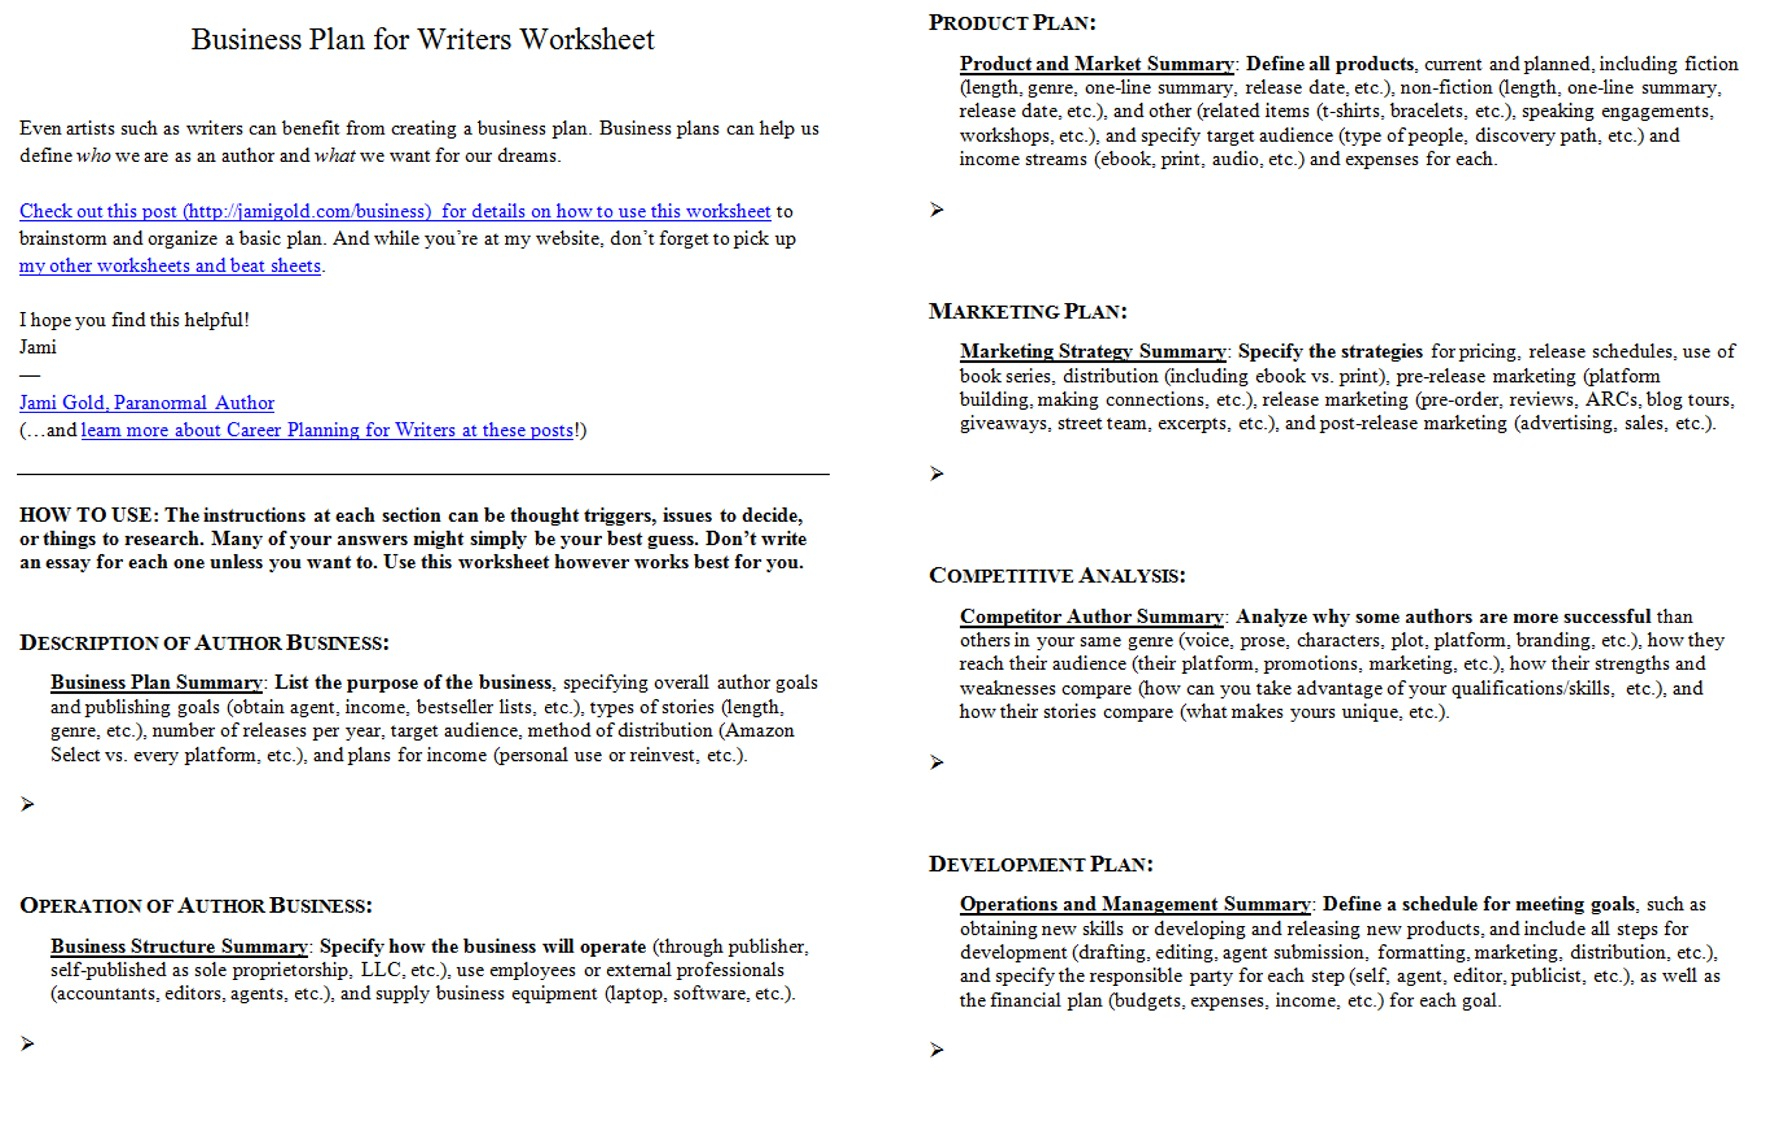 Aldiablosus  Pleasant Worksheets For Writers  Jami Gold Paranormal Author With Great Screen Shot Of Both Pages Of The Business Plan For Writers Worksheet With Appealing Worksheet On Ionic And Covalent Bonding Also Sebastian Lives In A Hat Worksheets In Addition Why Did The Kangaroo See A Psychiatrist Math Worksheet And Graphing Absolute Value Equations Worksheet Answers As Well As Chemistry Review Worksheet Answers Additionally Mixed Stoichiometry Worksheet From Jamigoldcom With Aldiablosus  Great Worksheets For Writers  Jami Gold Paranormal Author With Appealing Screen Shot Of Both Pages Of The Business Plan For Writers Worksheet And Pleasant Worksheet On Ionic And Covalent Bonding Also Sebastian Lives In A Hat Worksheets In Addition Why Did The Kangaroo See A Psychiatrist Math Worksheet From Jamigoldcom